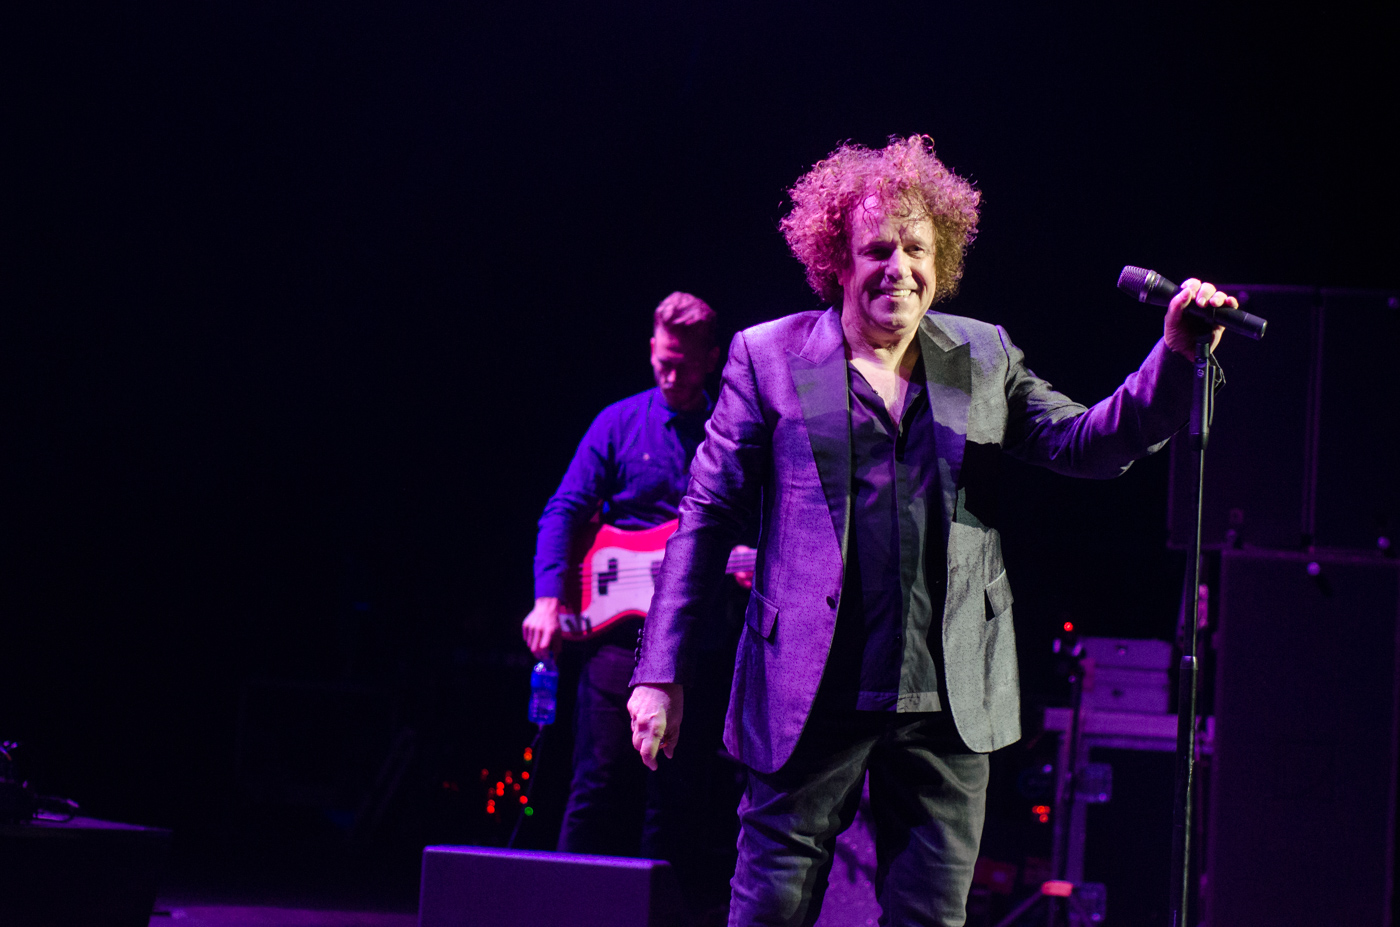 Leo Sayer at Bord Gais Energy Theatre by Sean Smyth (16-10-15) (111 of 129)